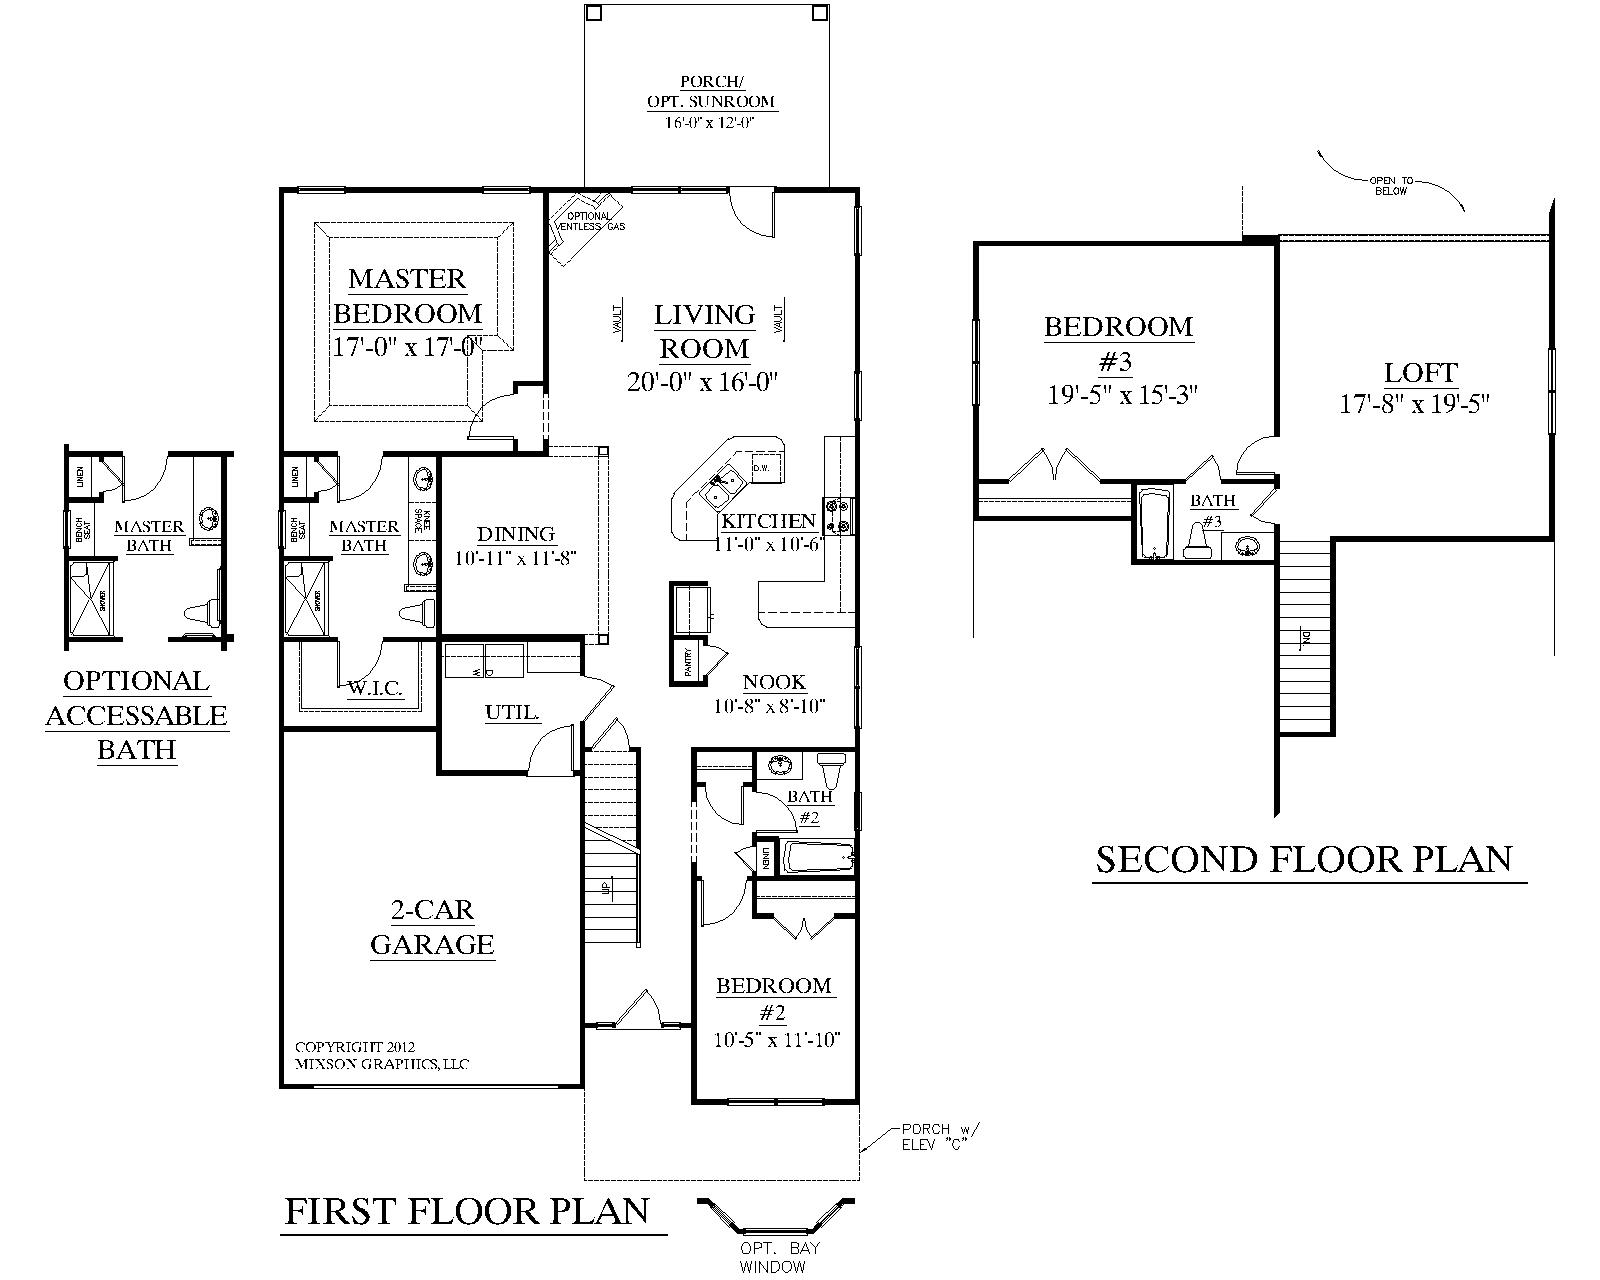 Small One Story House Plans With Basement Small One Story House Plans With Basement 3 bedroom 2 bath house plans with basement elegant ranch floor 1600 X 1280